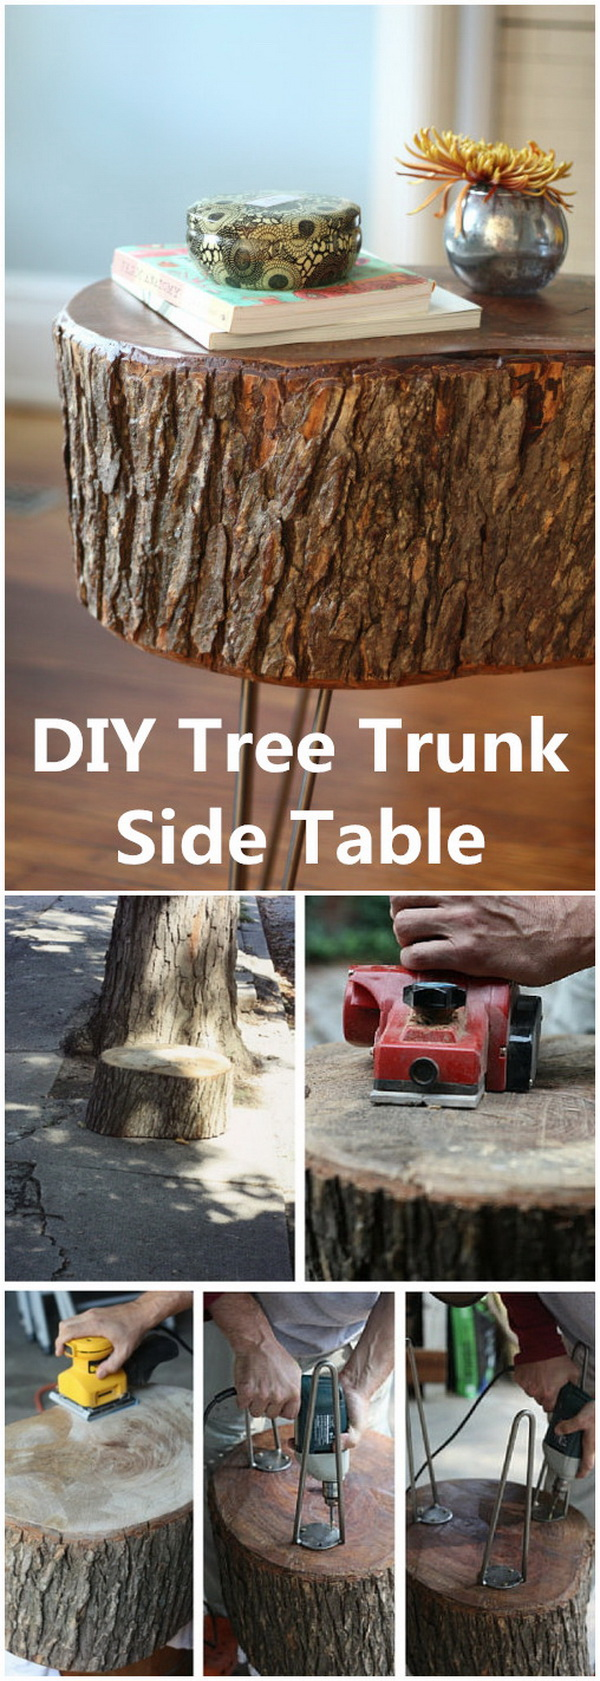 DIY Tree Trunk Side Table.